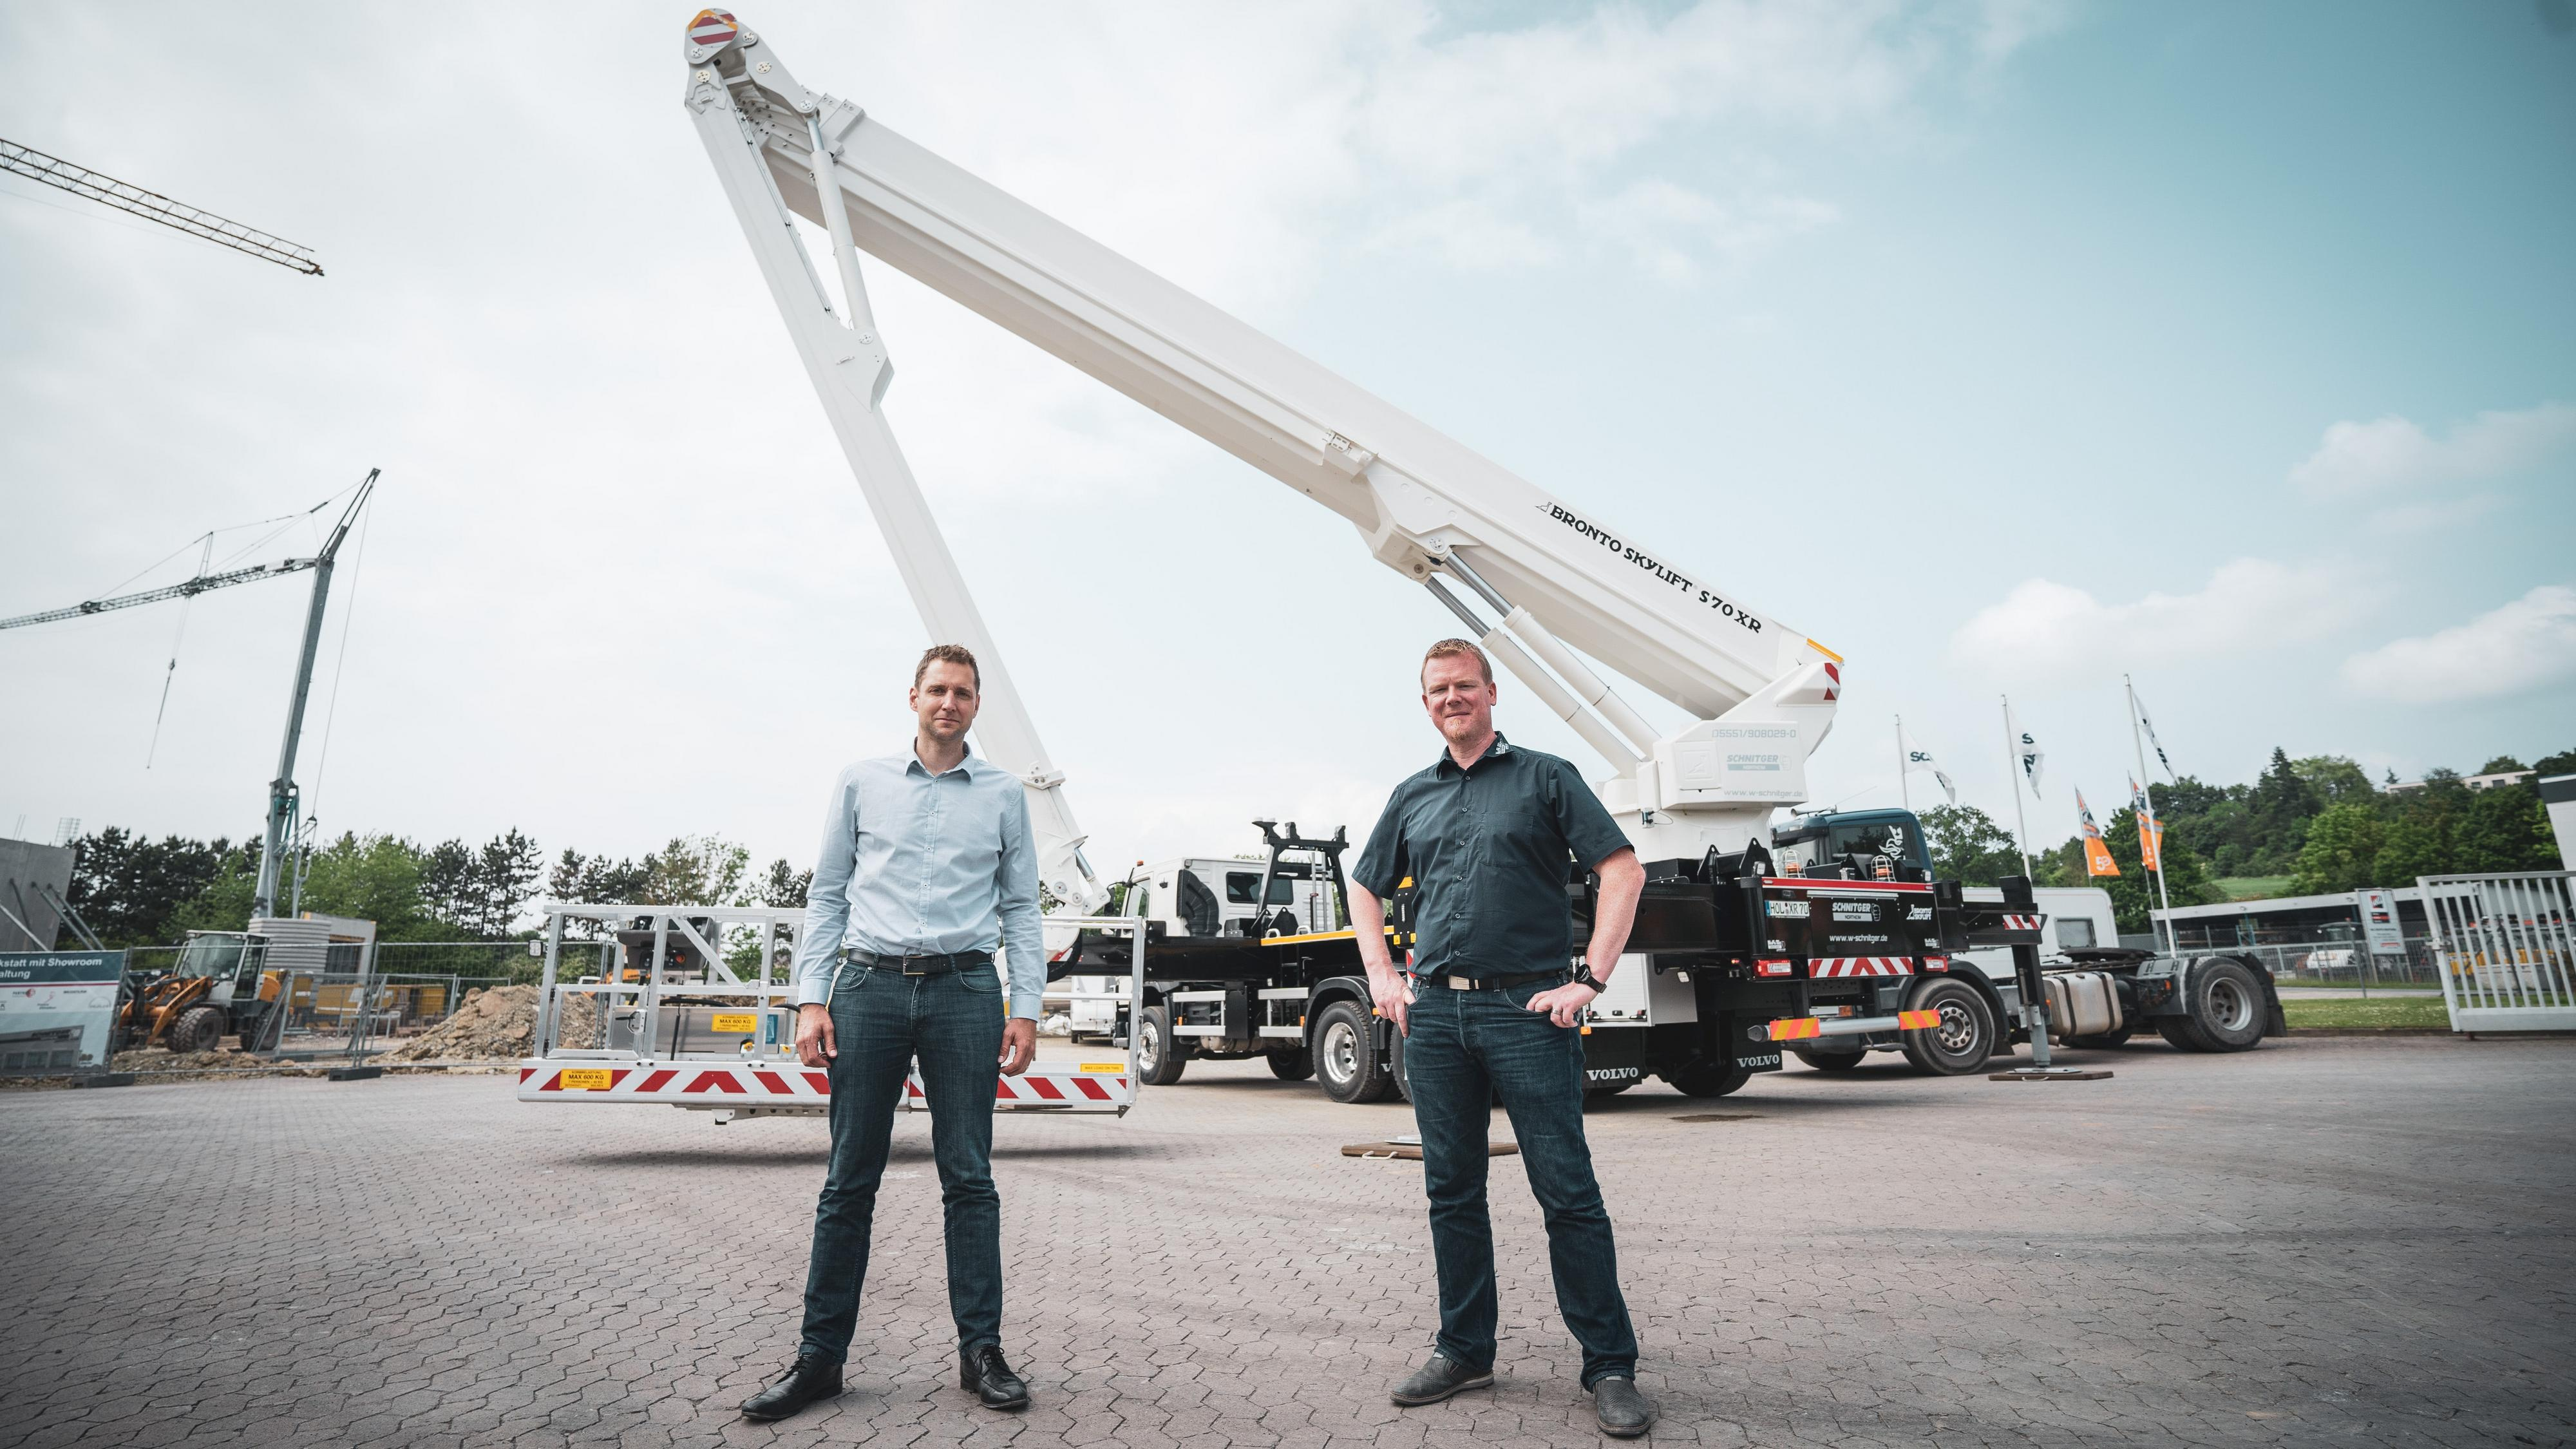 Bronto S70XR for W Schnitger GmbH